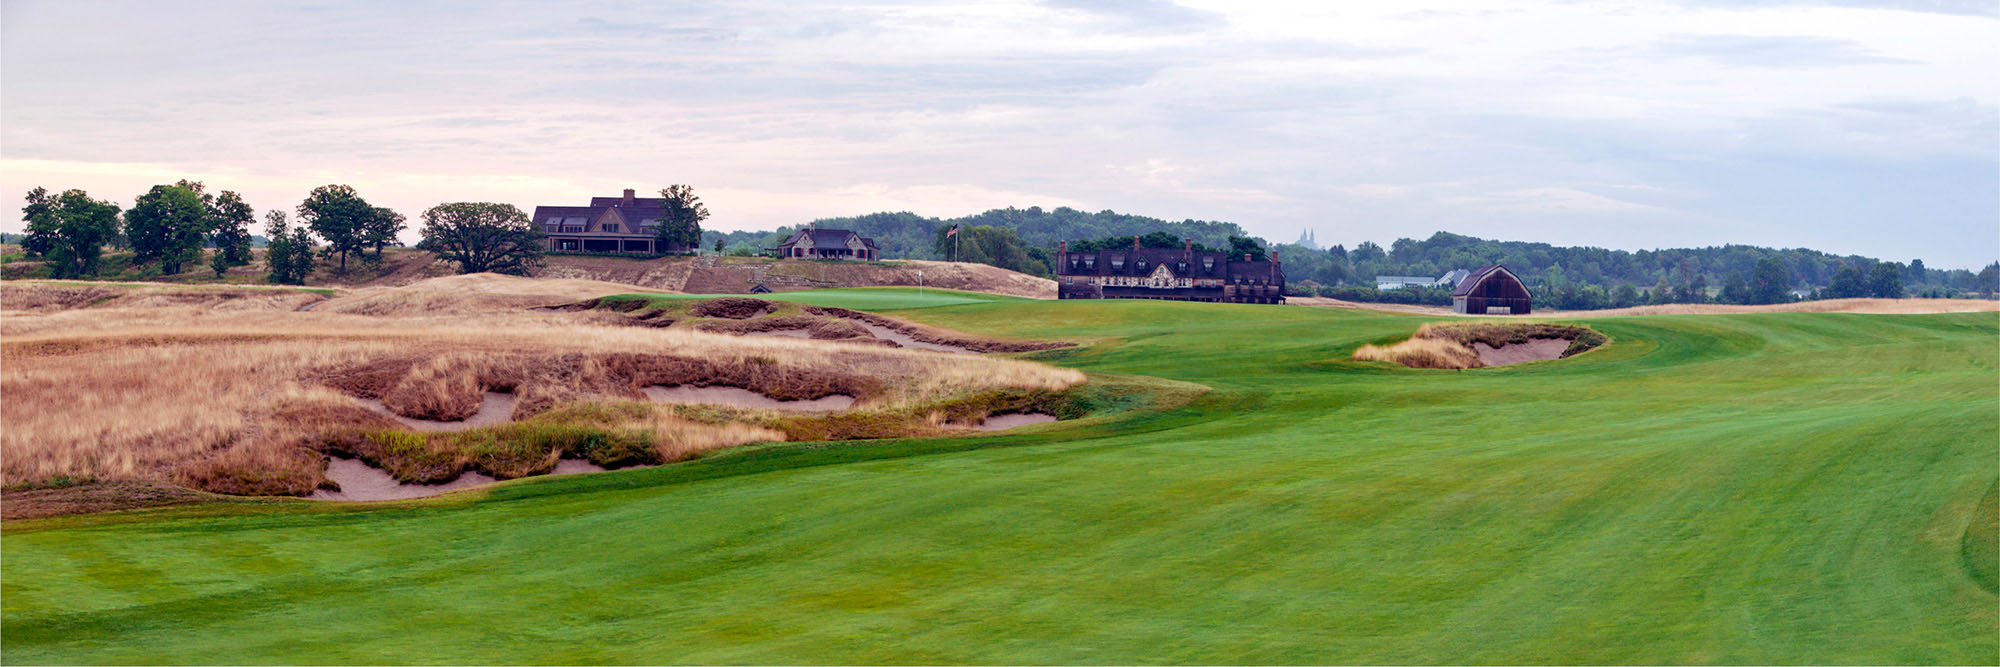 Golf Course Image - Erin Hills No. 18